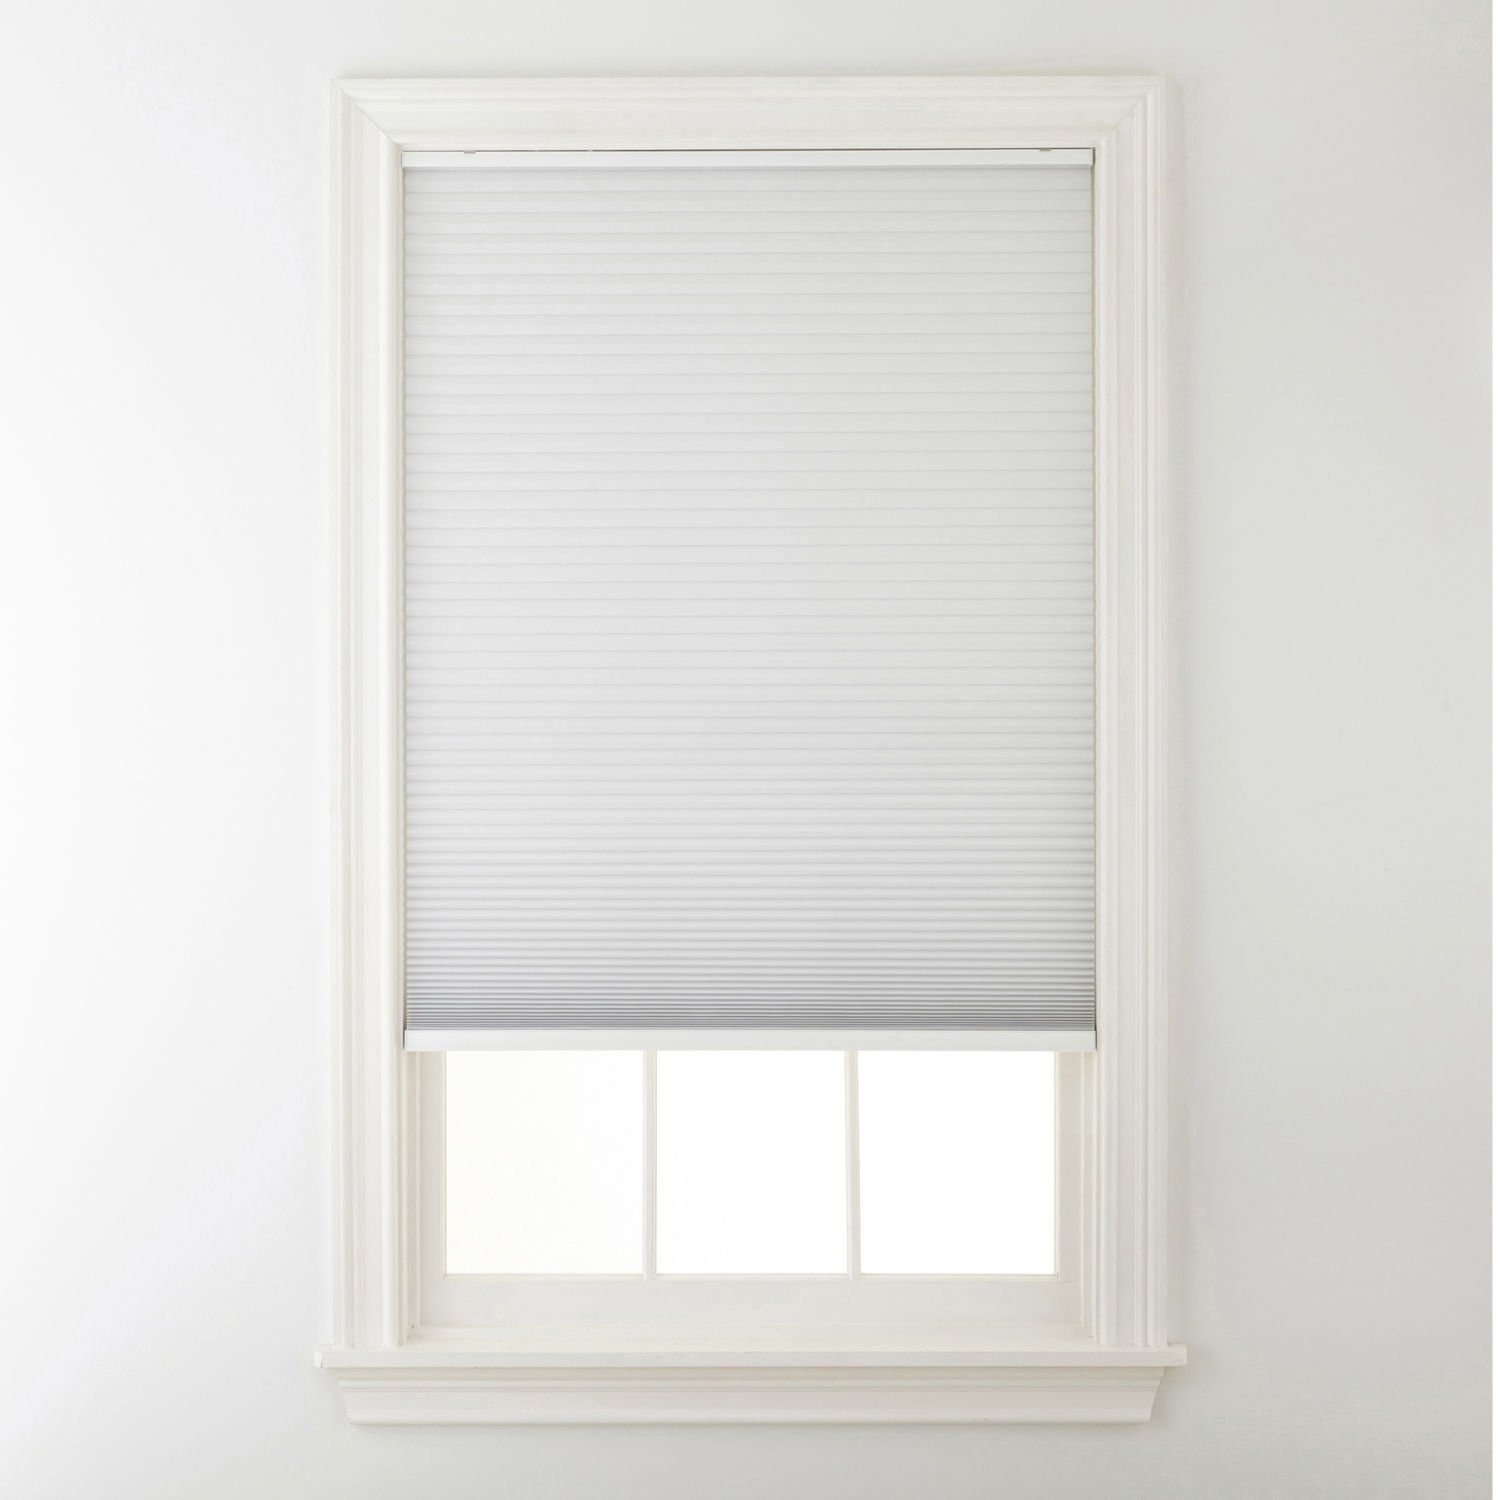 Window Blind Store Light Filtering Cordless Cellular Shade Nimbus Cloud Gray 23x48 by Window Blind Store